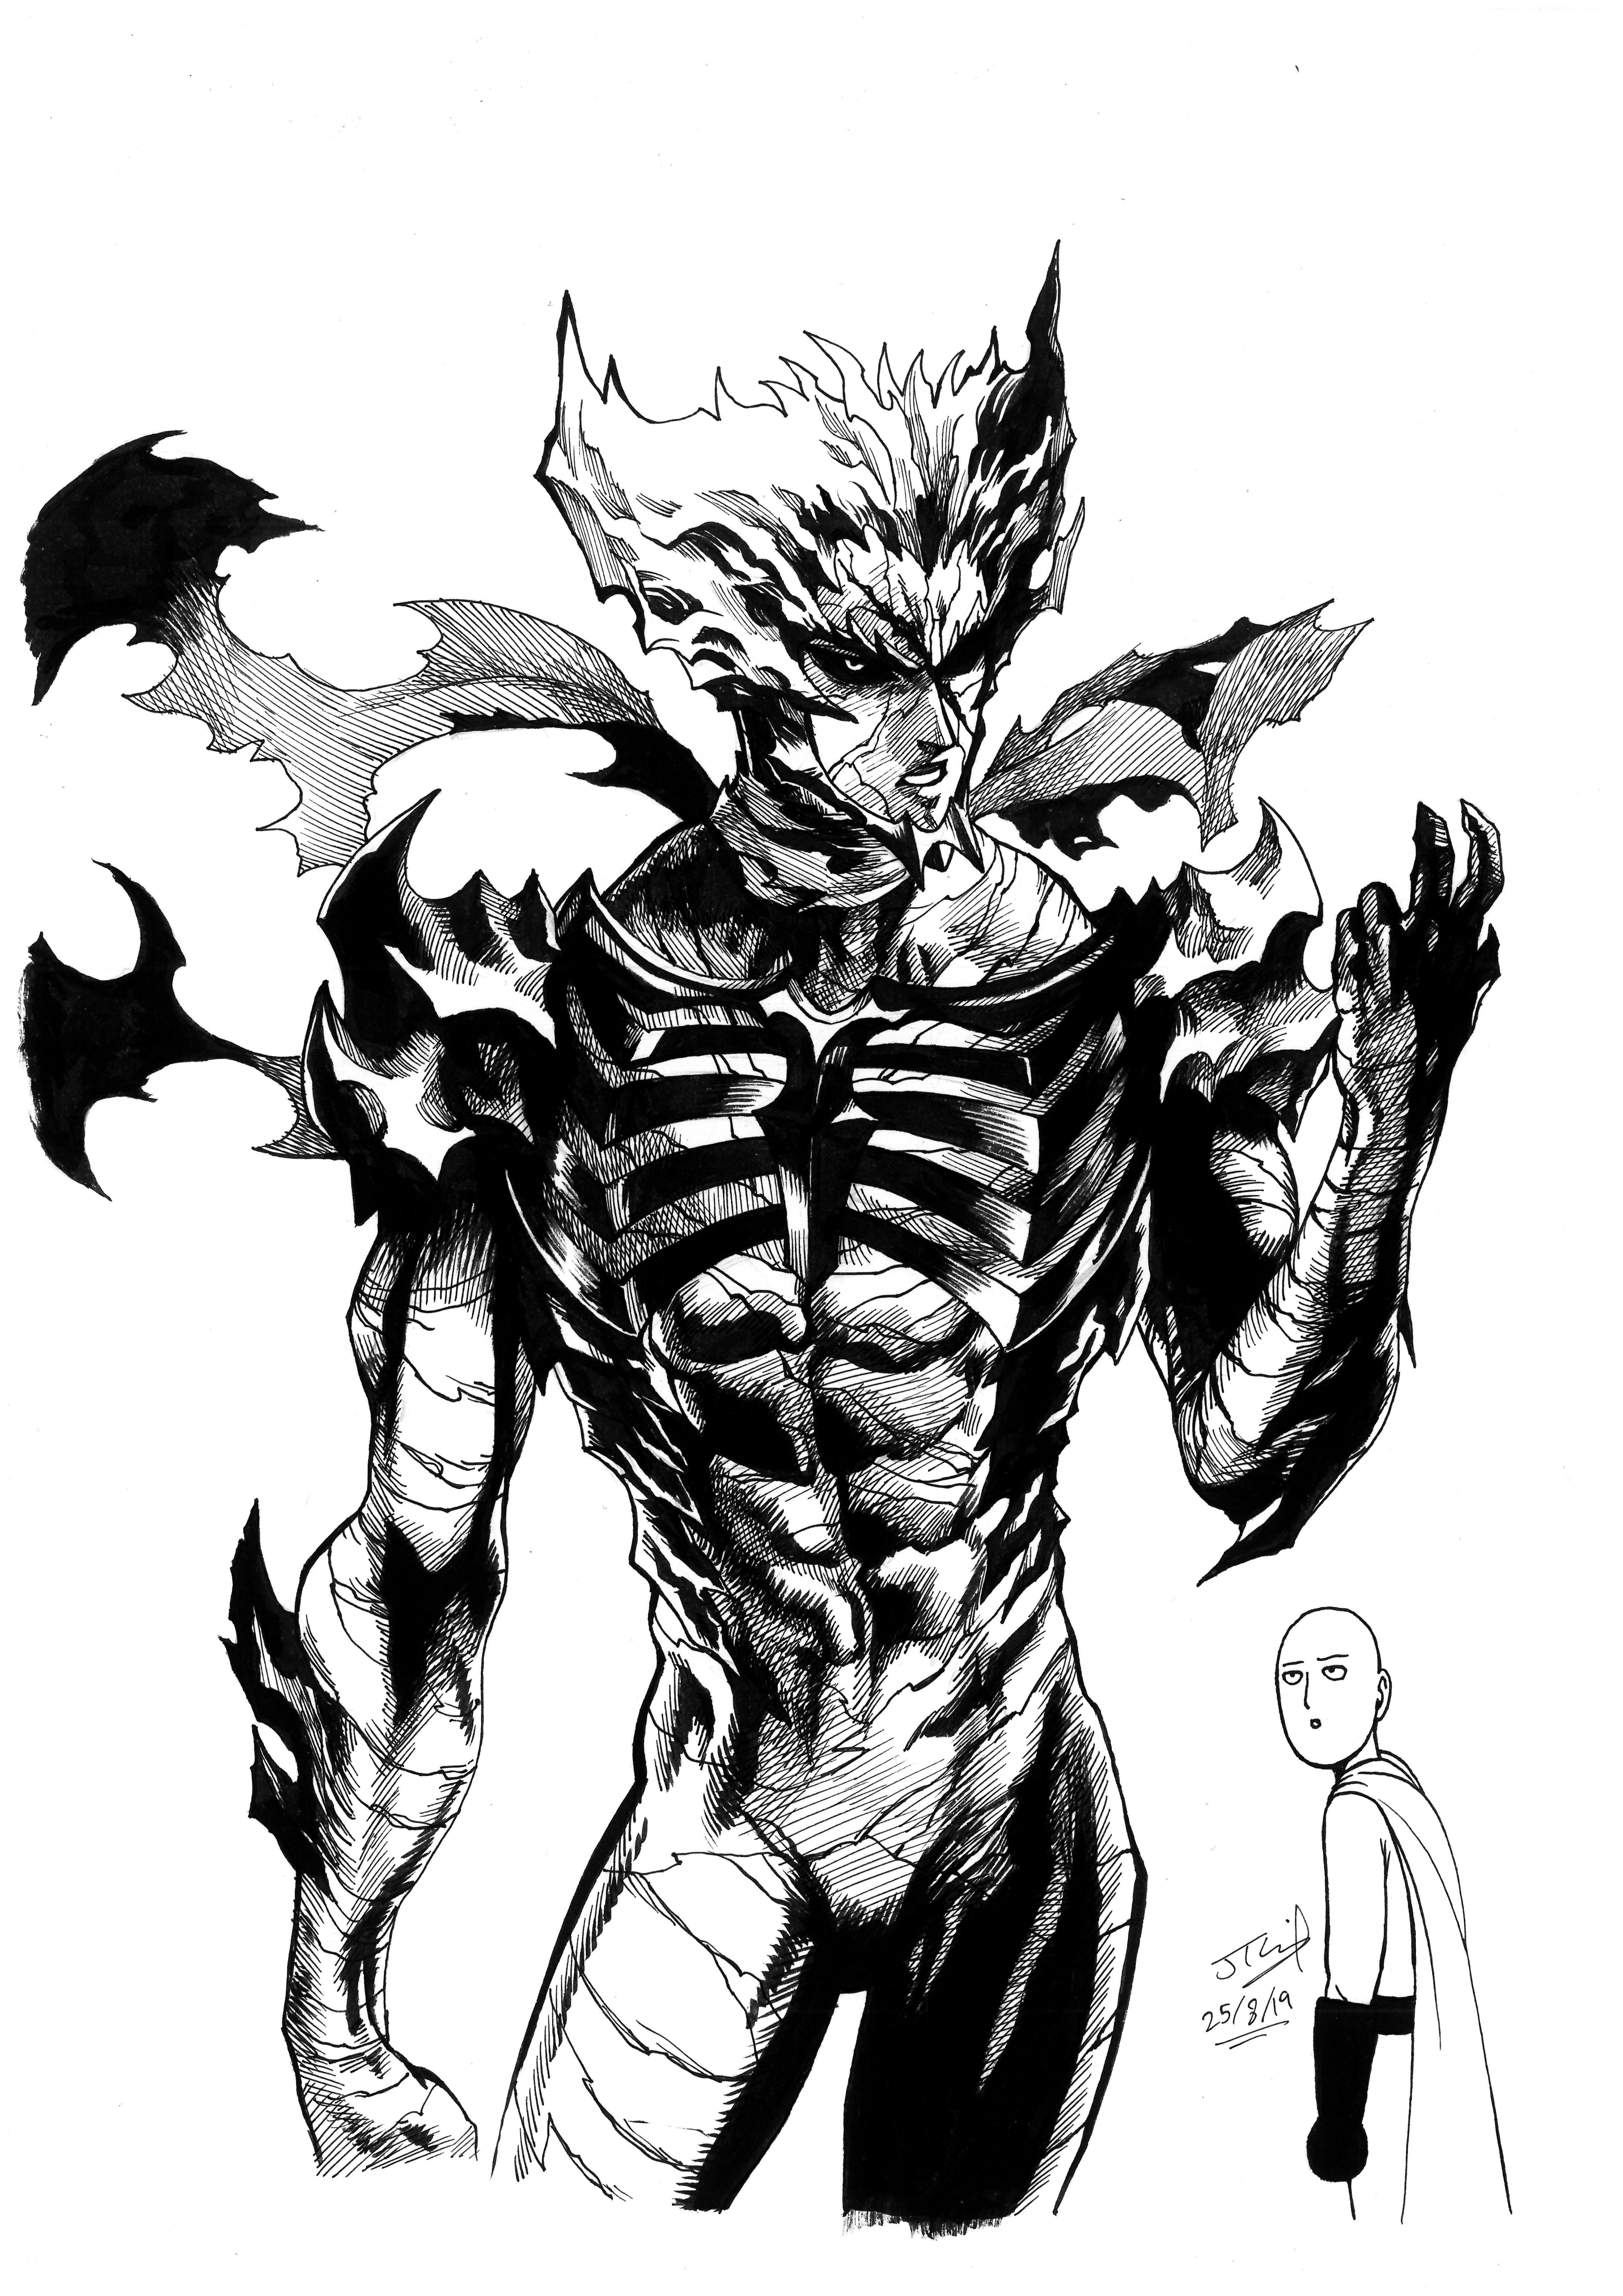 Drew Ag Design Inspired By Kamen Rider Villains R Onepunchman One Punch Man Know Your Meme